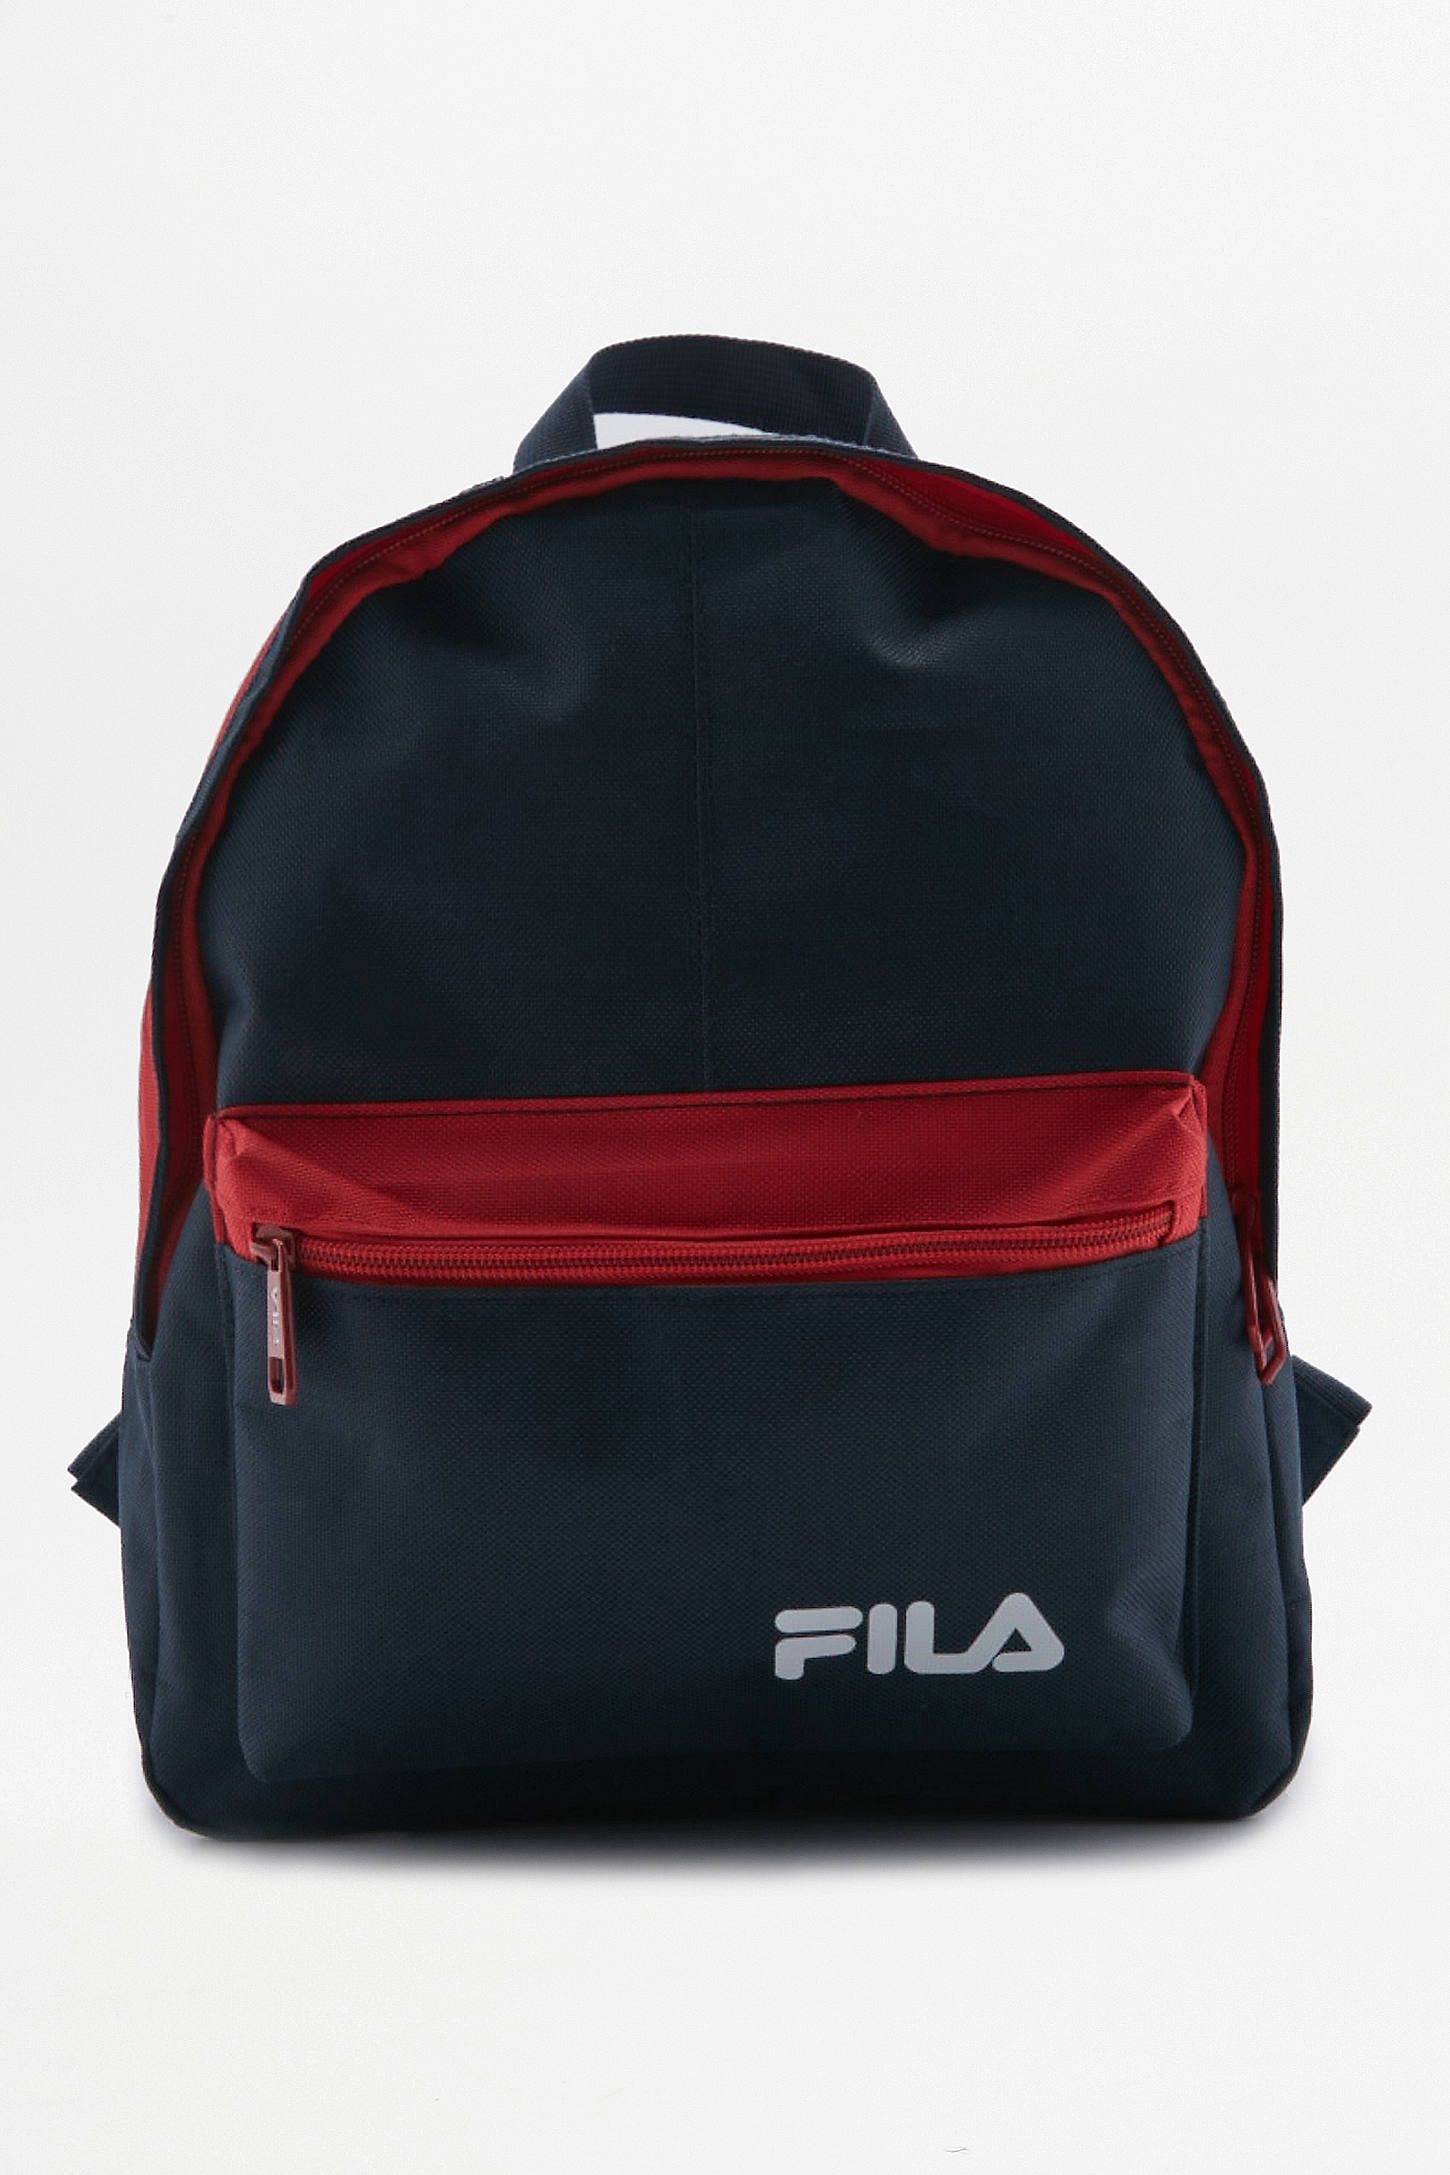 1d6e8fa4ee FILA Street Small Backpack | Backpack | Small backpack, Backpacks, Bags